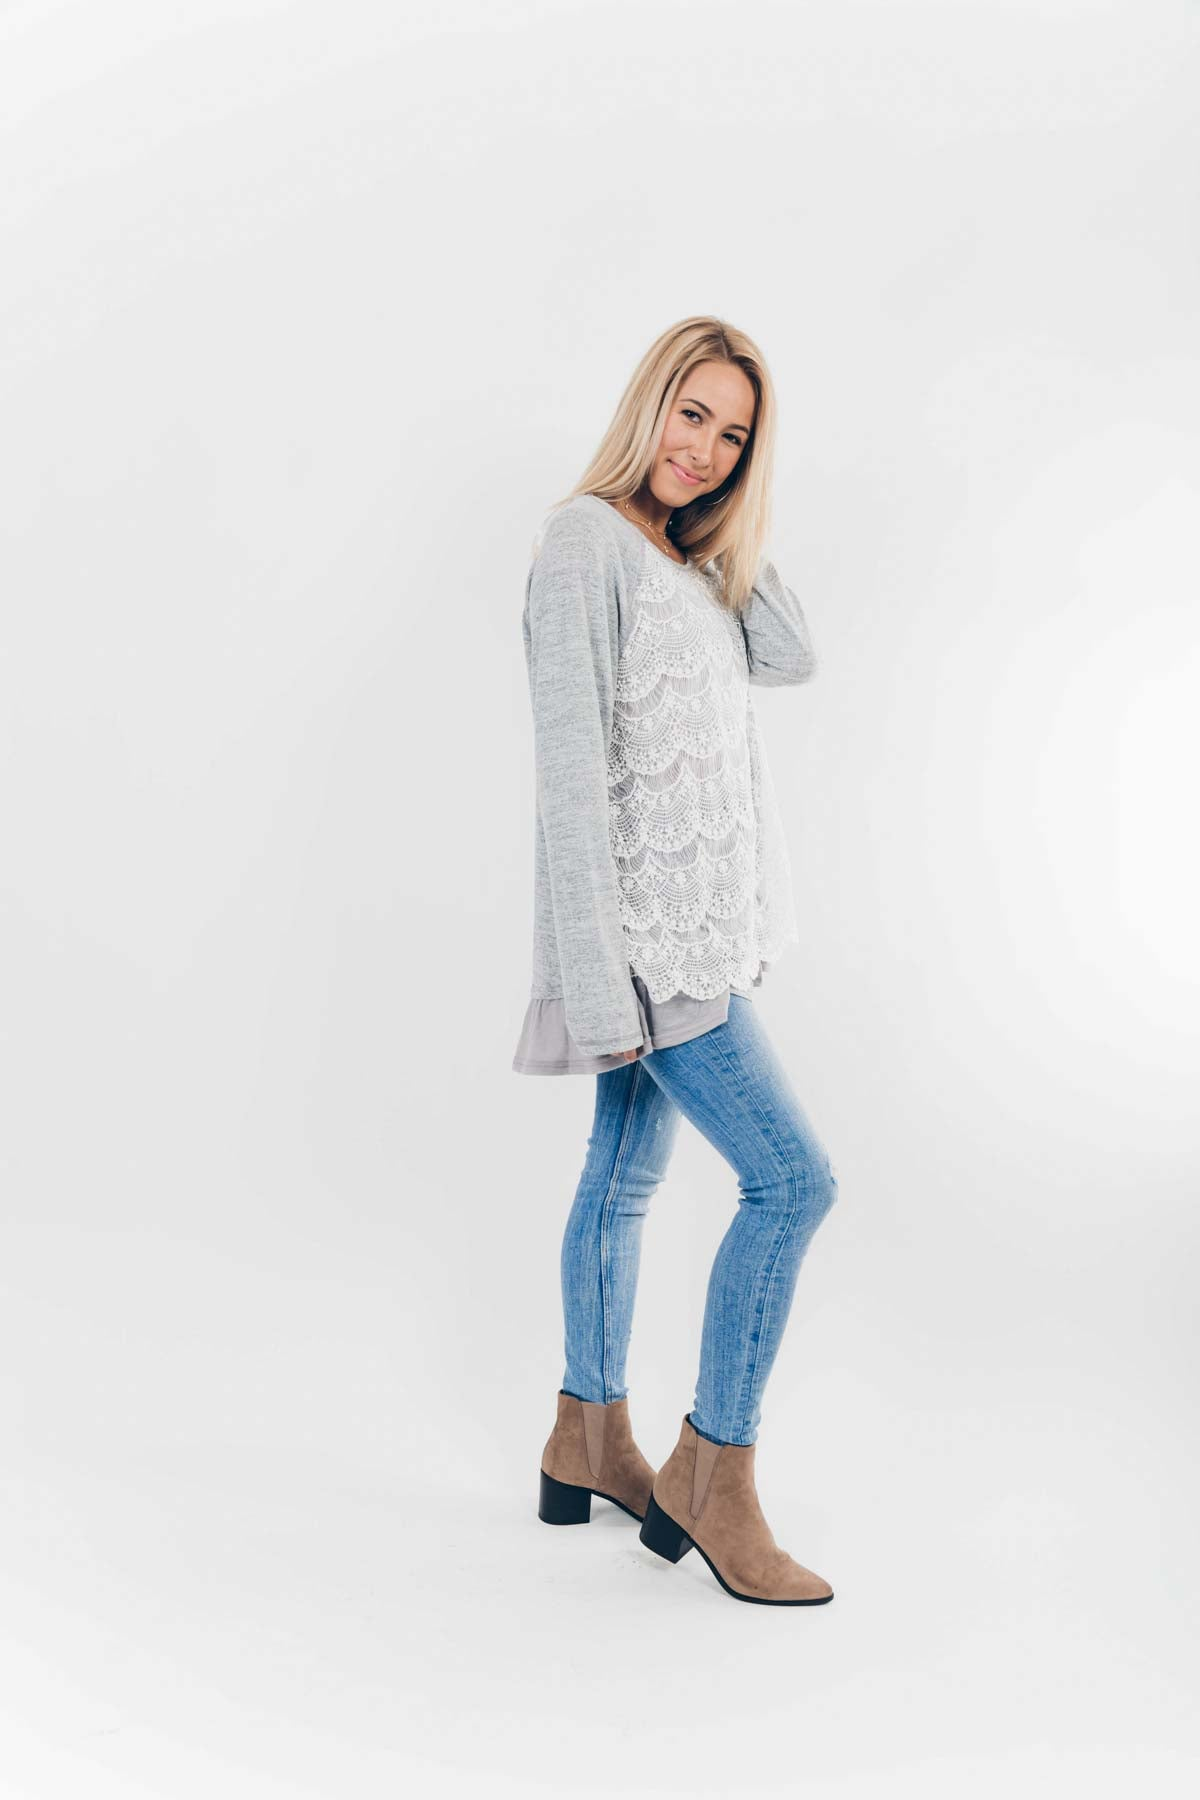 Chilly but Frilly Sweater in Heather Grey